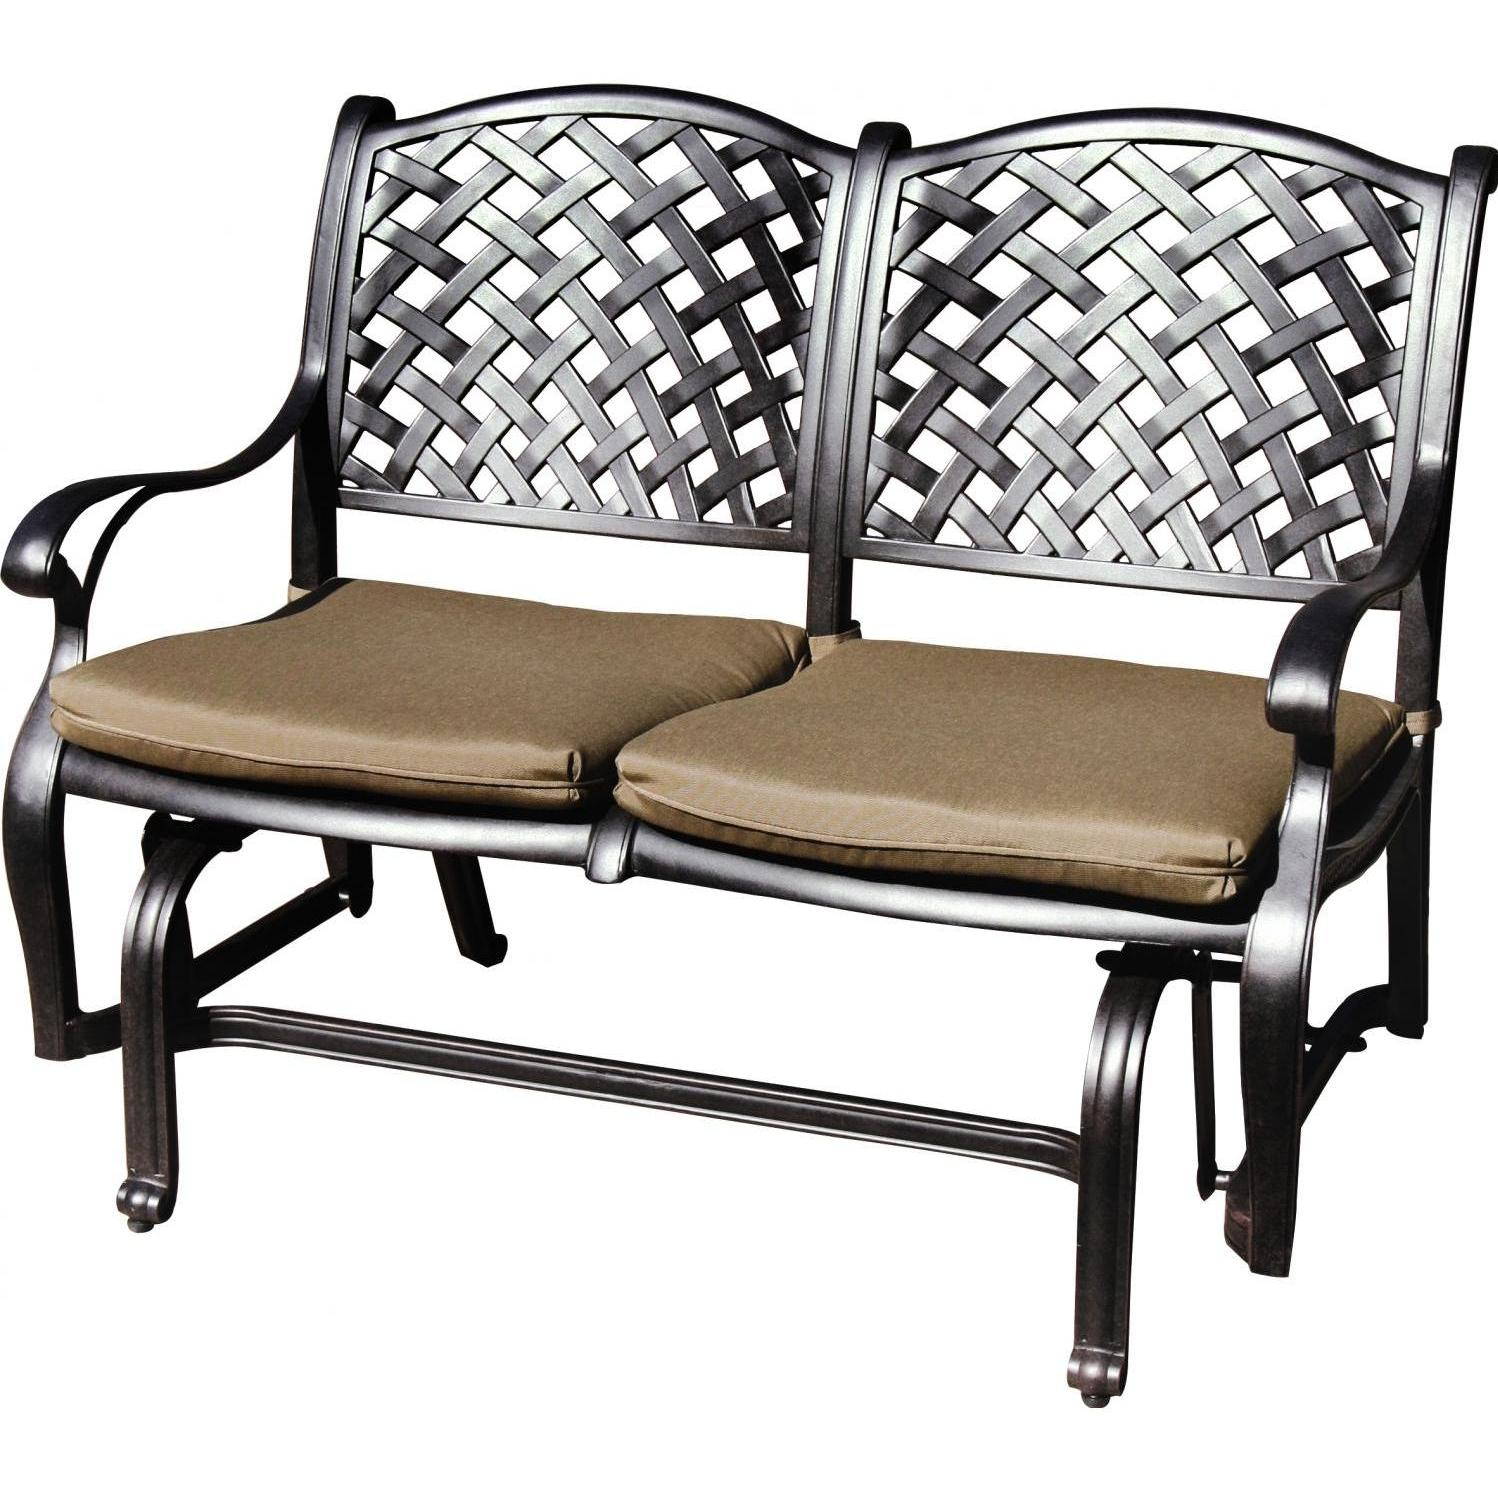 Darlee Nassau Cast Aluminum Patio Bench Glider Throughout Glider Benches With Cushion (Image 8 of 25)